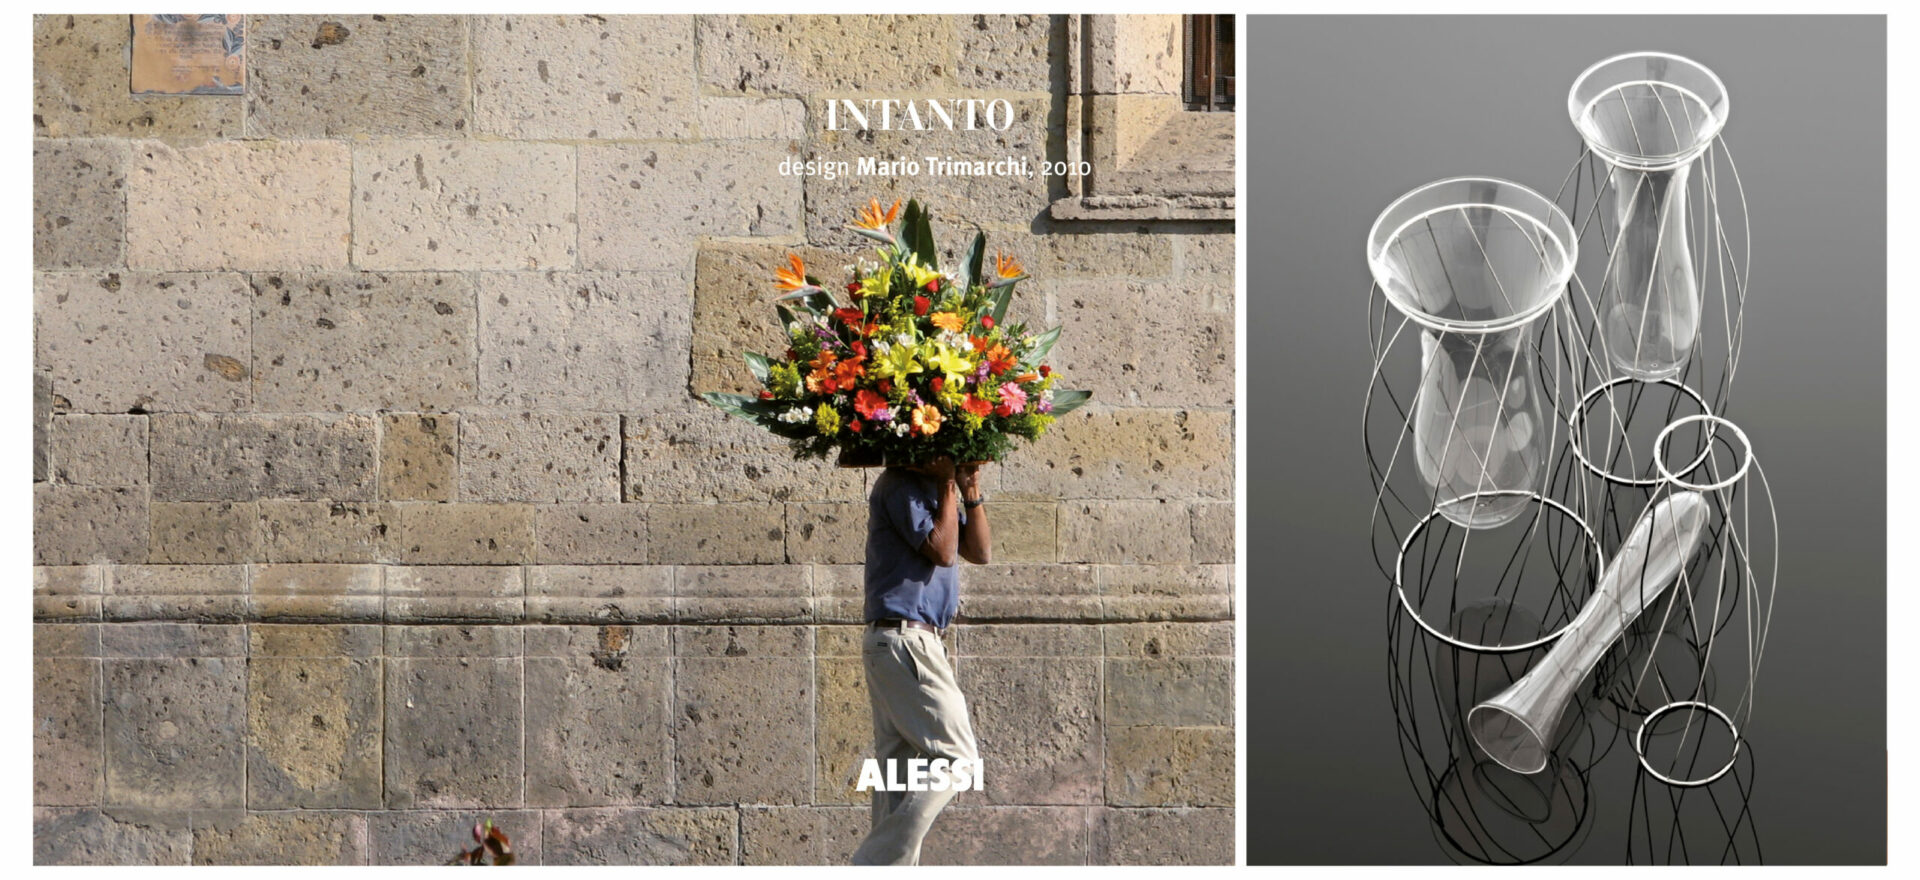 Intanto_Alessi_Catalogue_Mario Trimarchi Design_Products Artworks